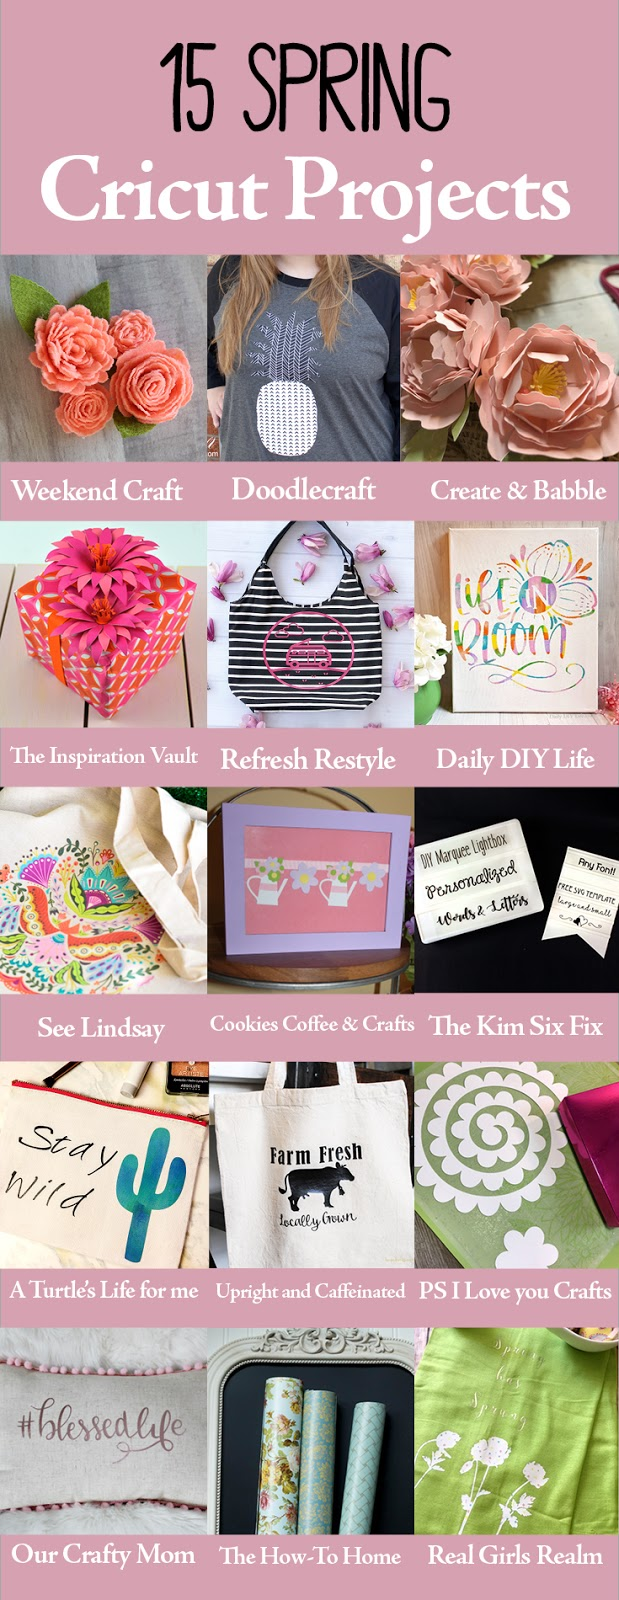 Get crafting with Cricut with inspiration from these 15 Spring projects! #CraftandCreatewithCricut #cricutmade